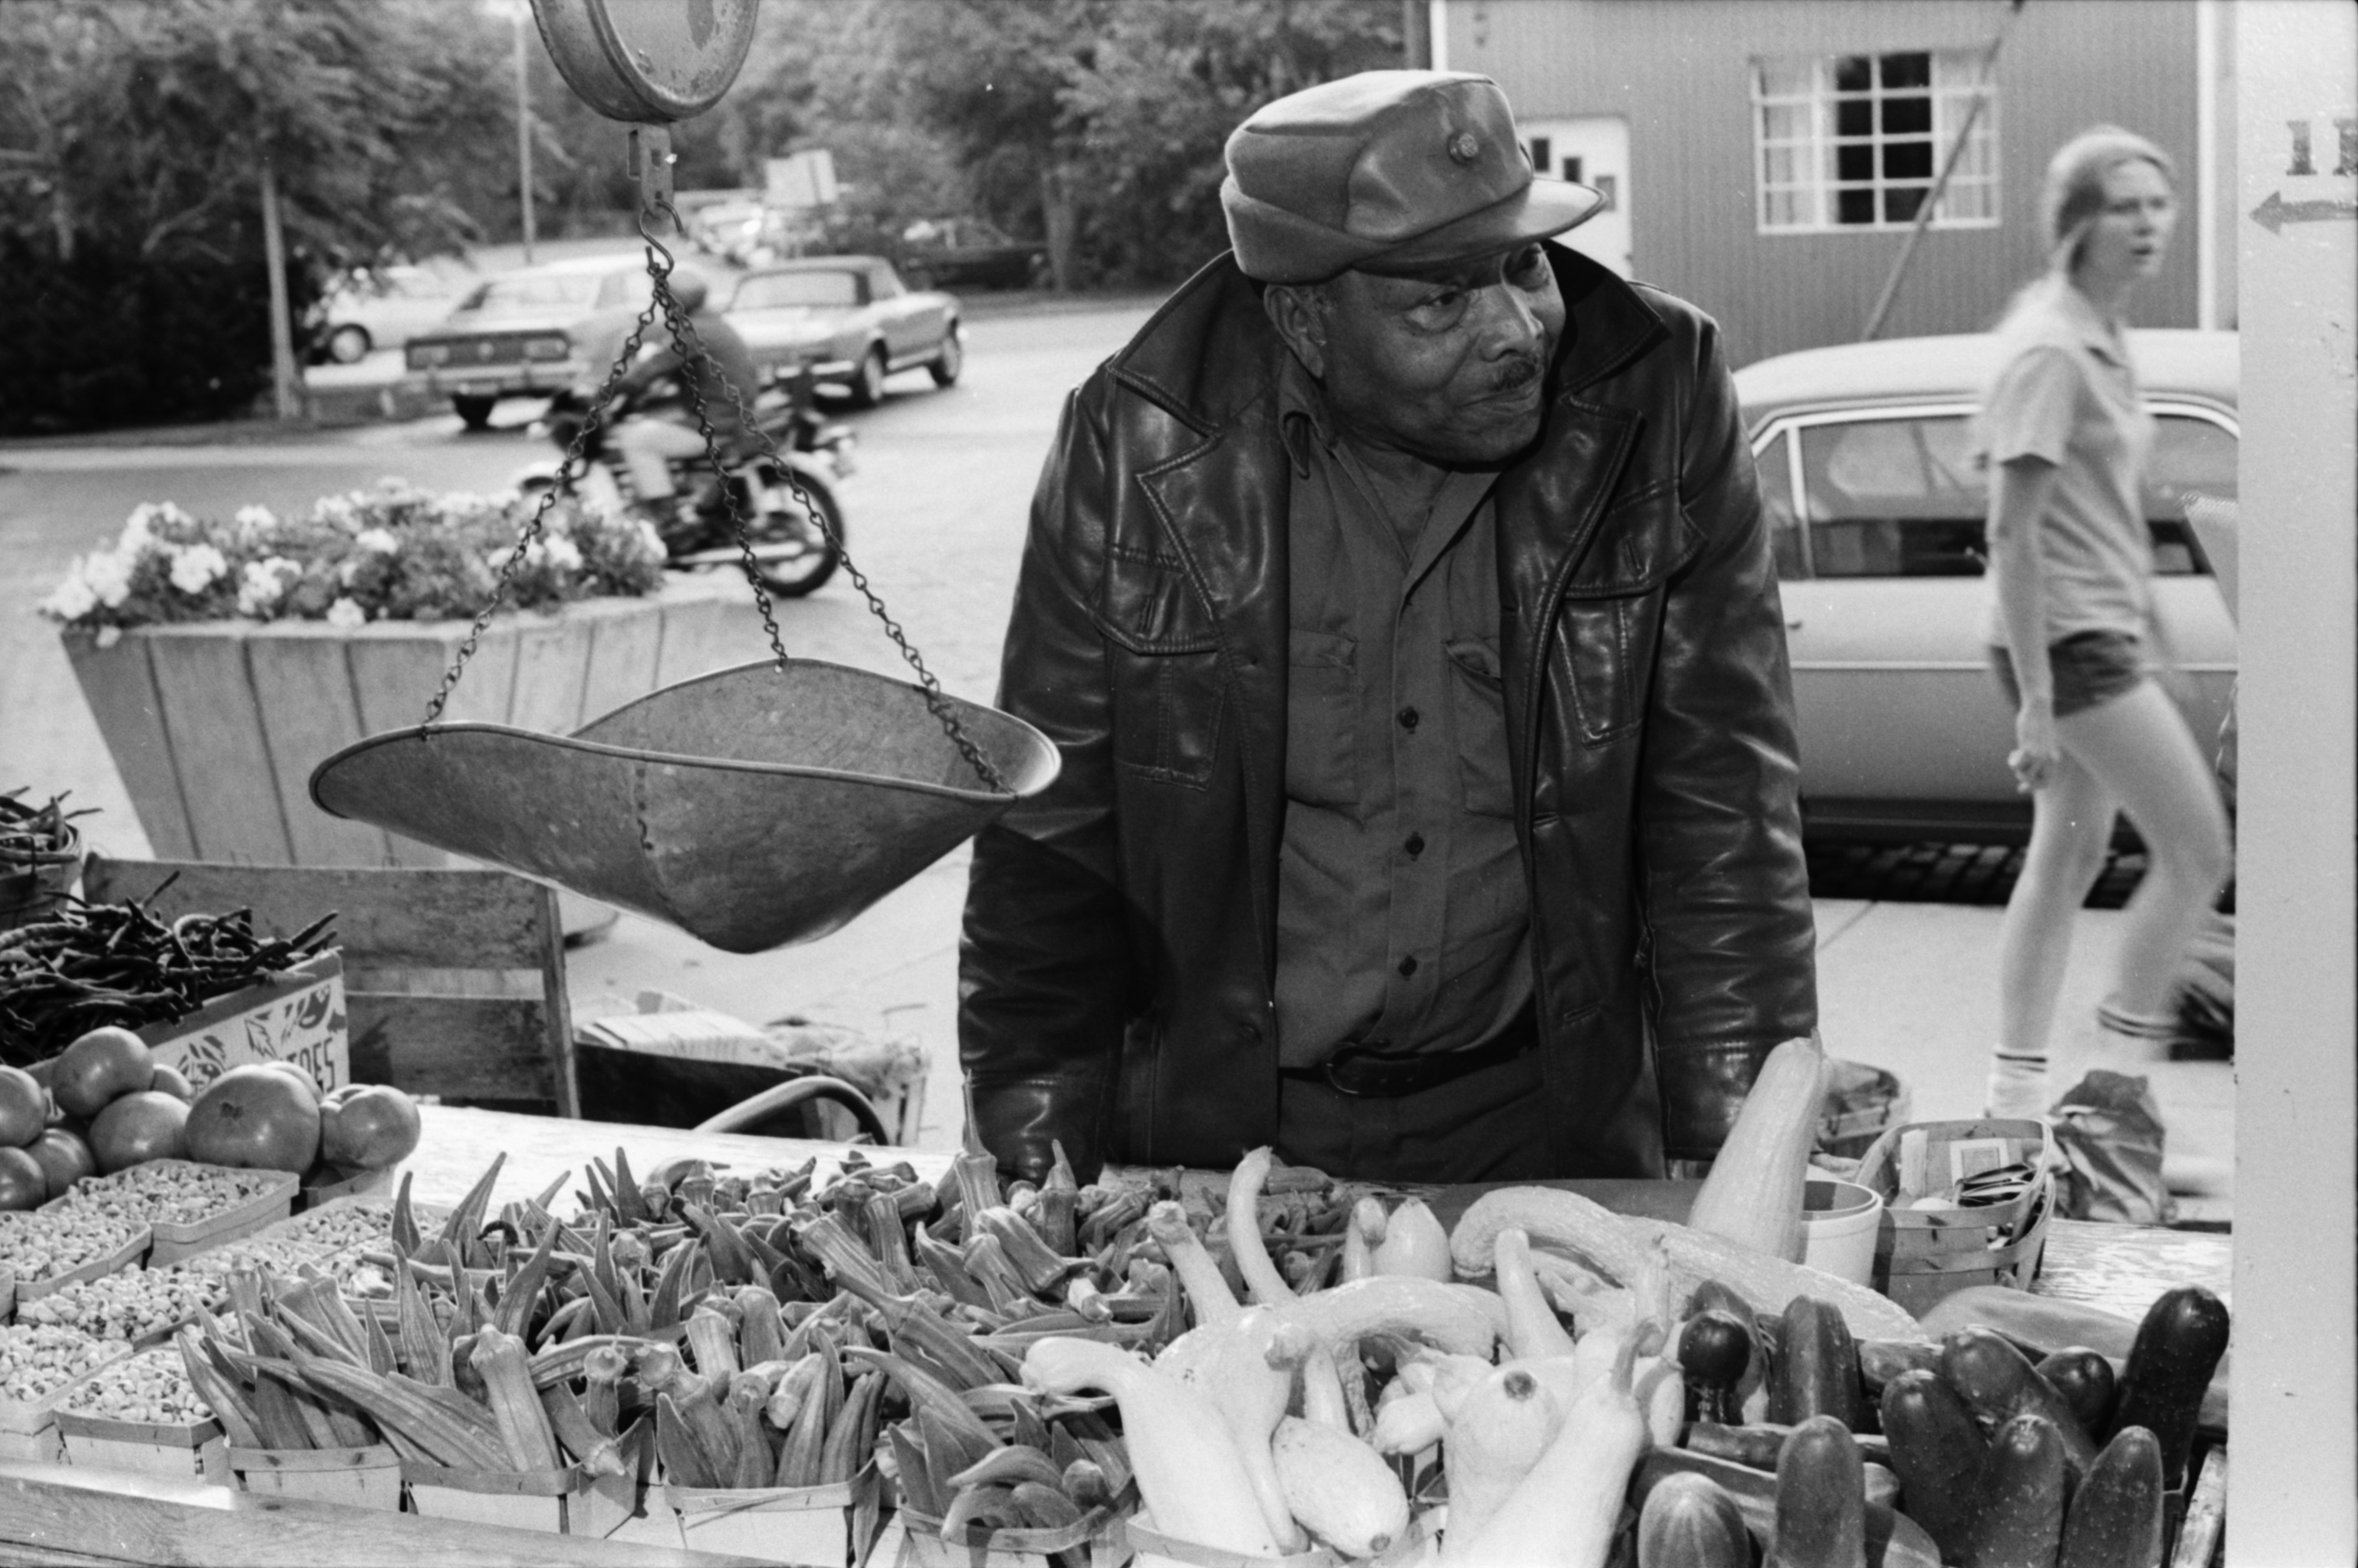 Rufus McGee at the Ann Arbor Farmers Market, August 1977 image